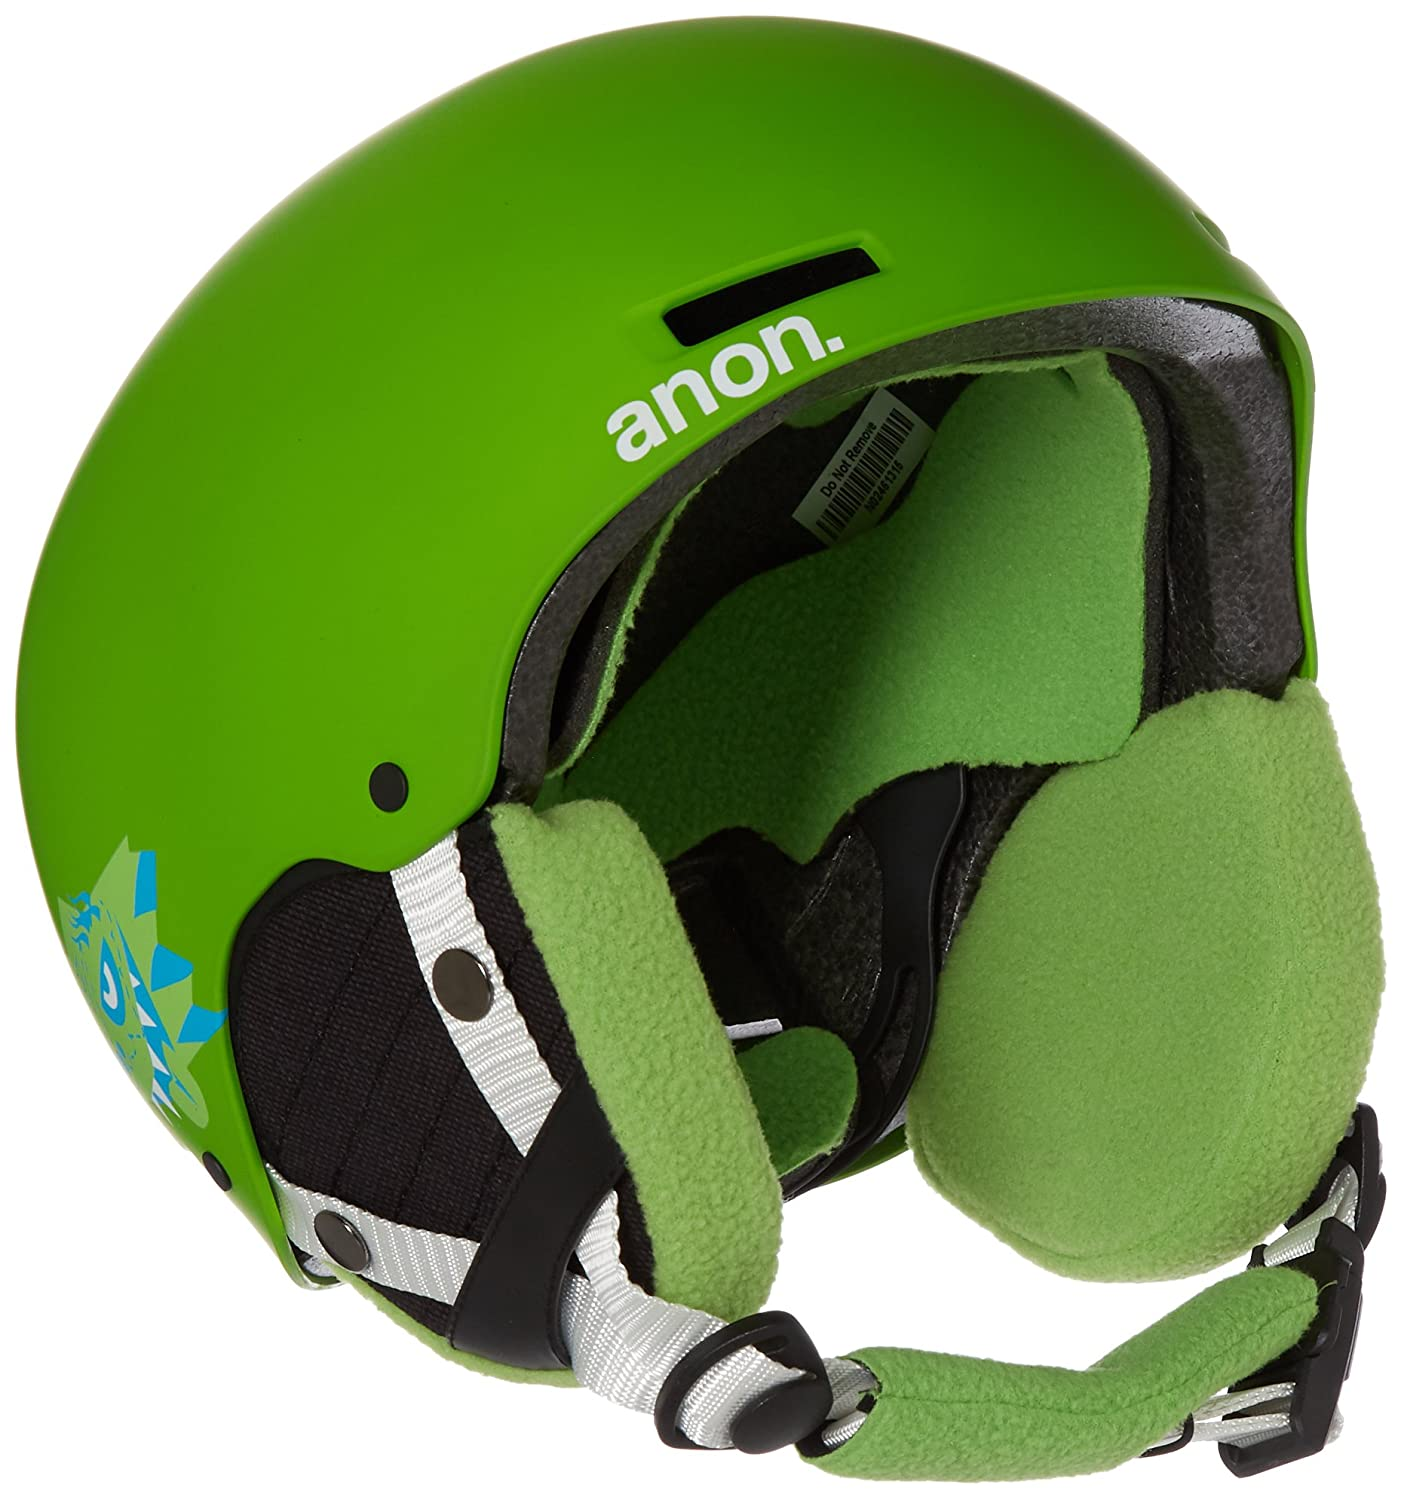 Top 15 Best Ski Helmet for Kids Reviews in 2020 11